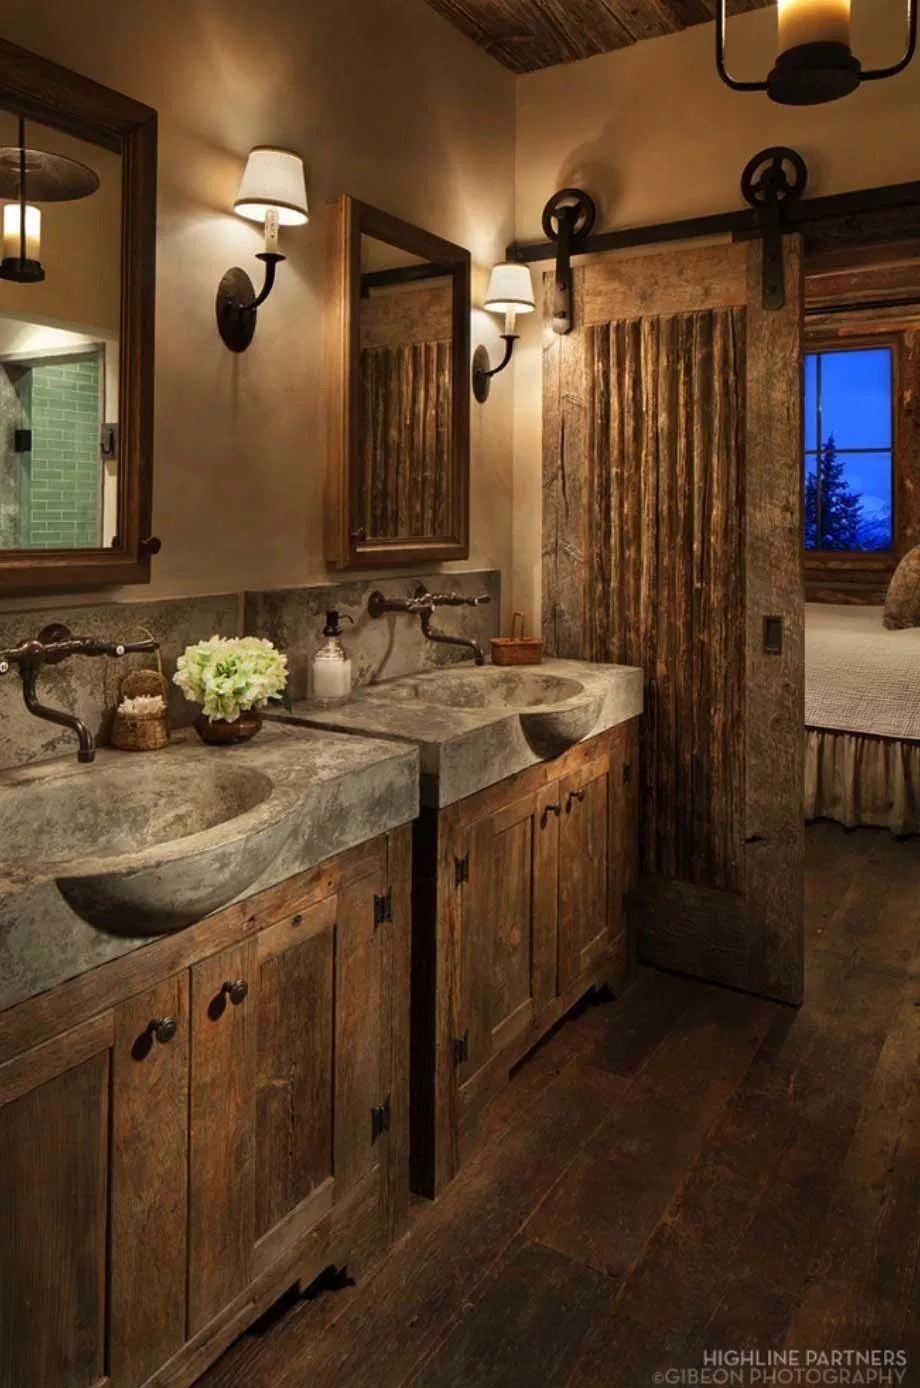 30+ Gorgeous Rustic Bathroom Decor Ideas to Try at Home – FarmFoodFamily